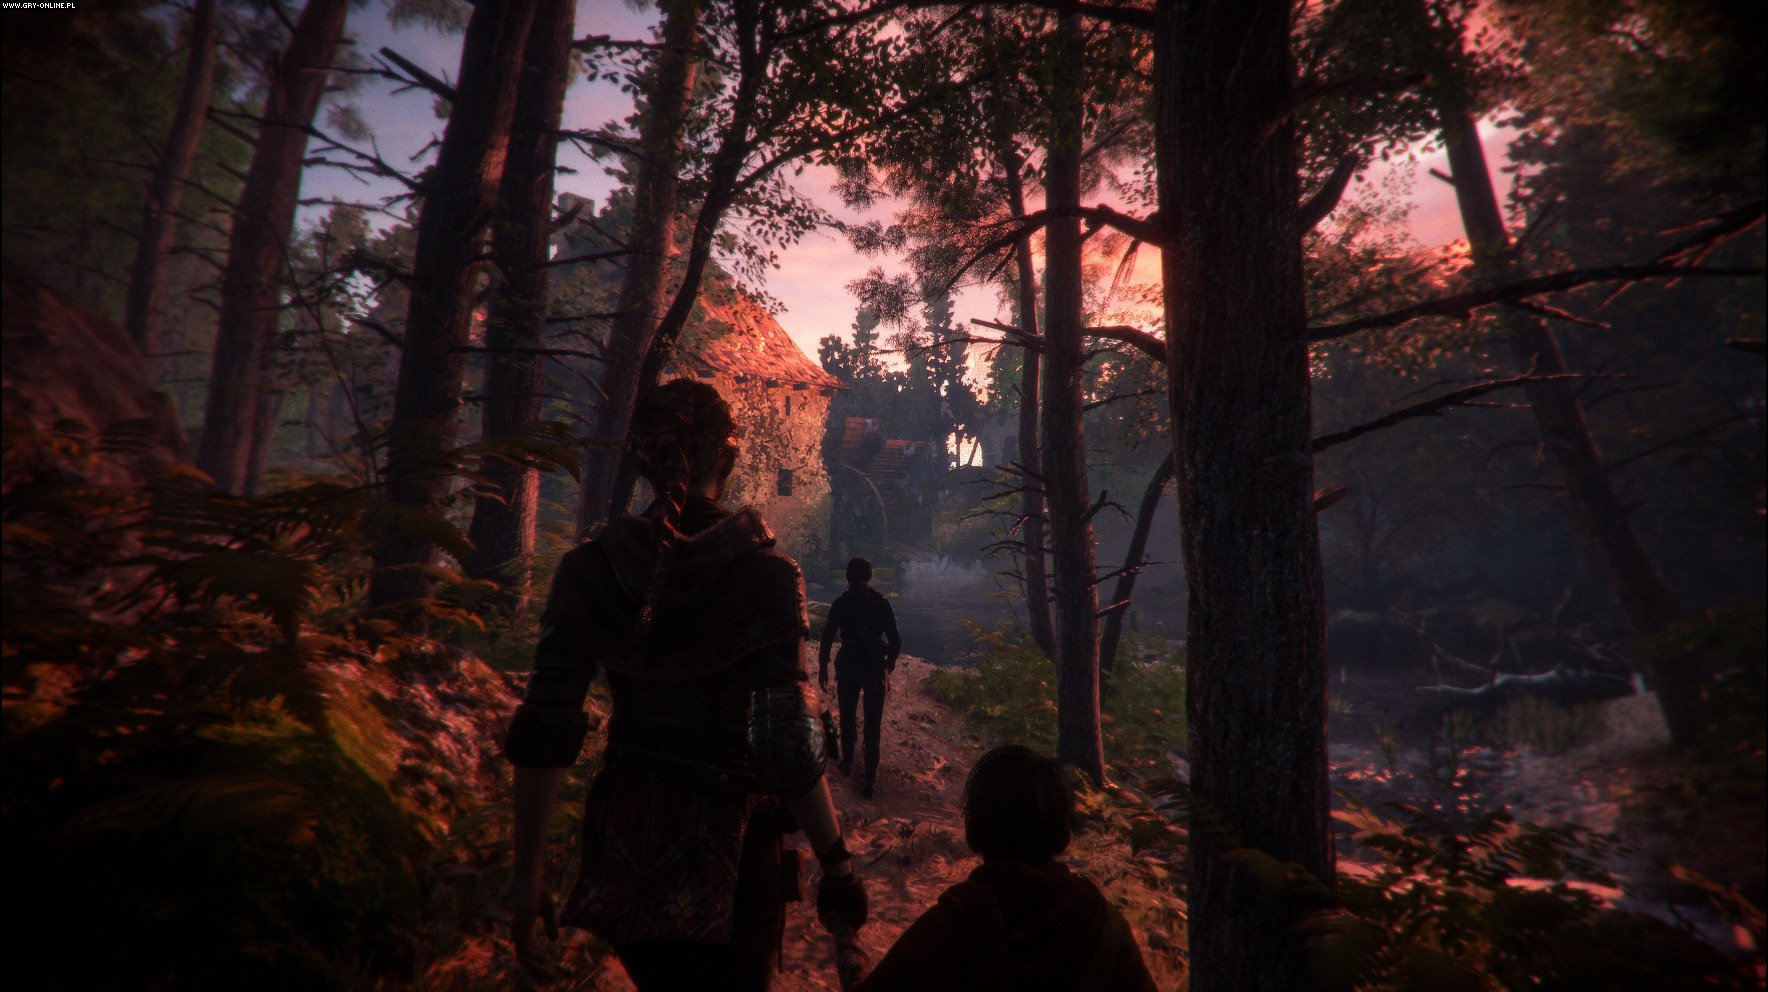 A Plague Tale: Innocence PC, PS4, XONE Gry Screen 5/30, Asobo Studio, Focus Home Interactive